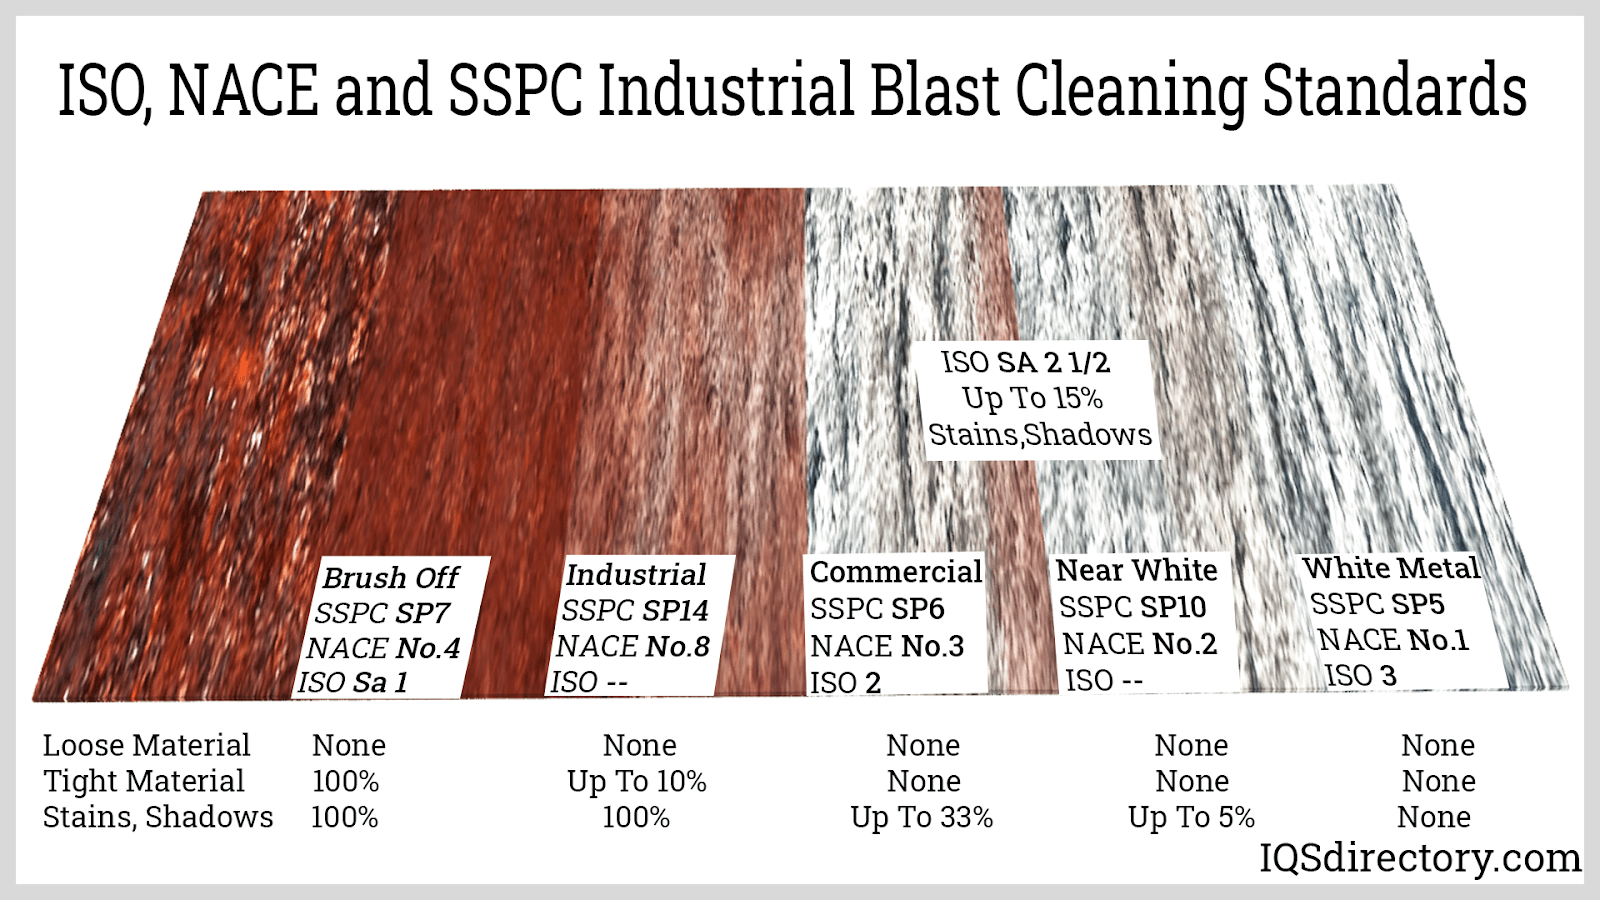 ISO, NACE and SSPC Industrial Blast Cleaning Standards